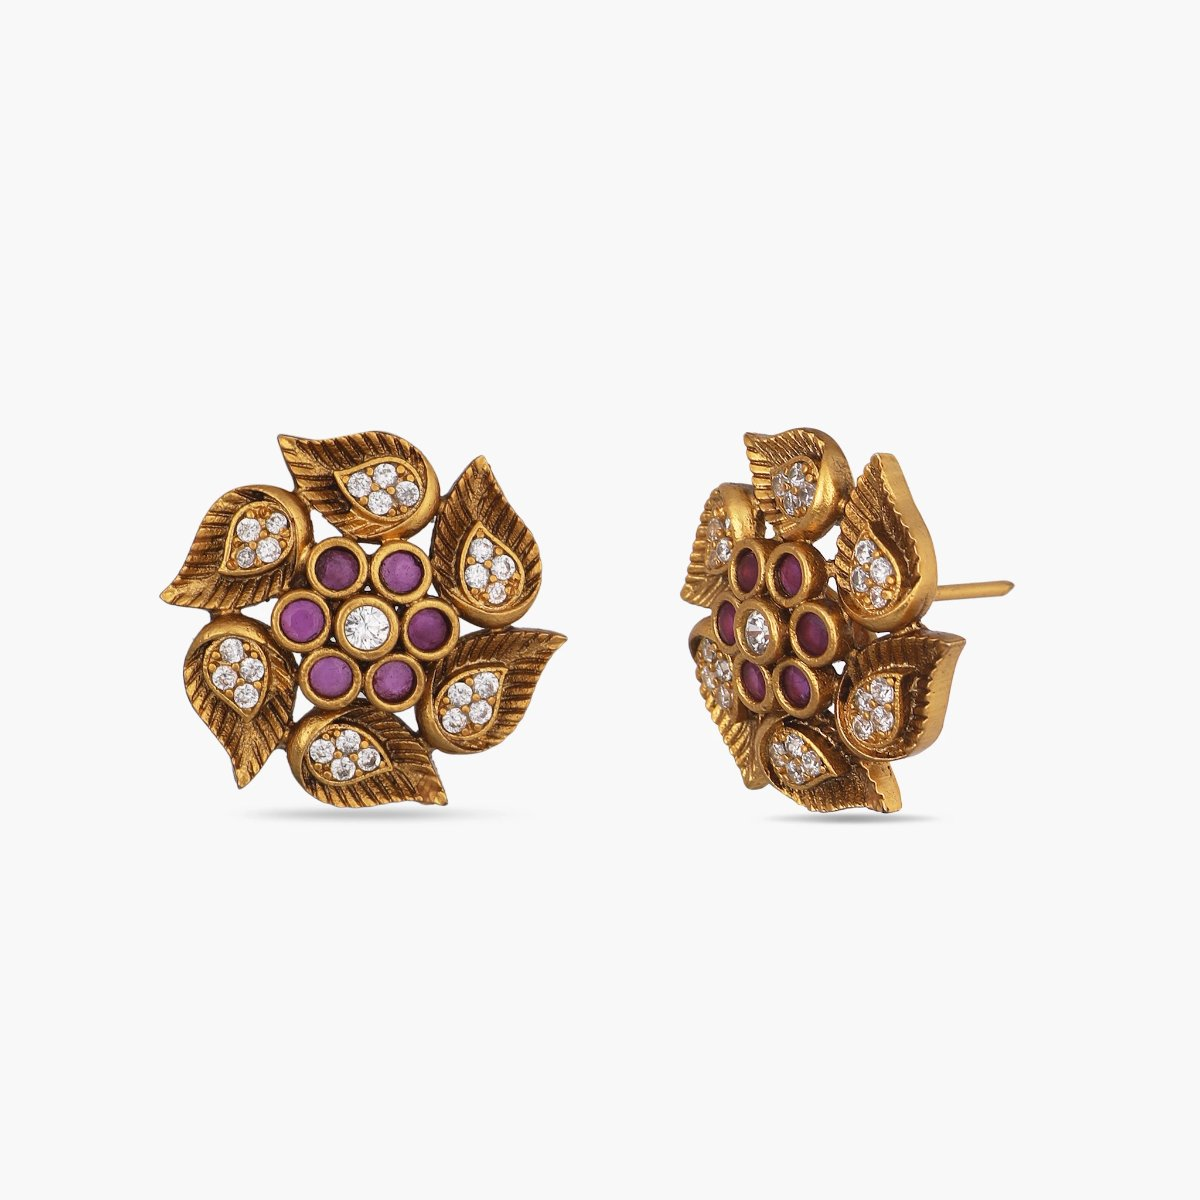 Dalaja Antique Earrrings